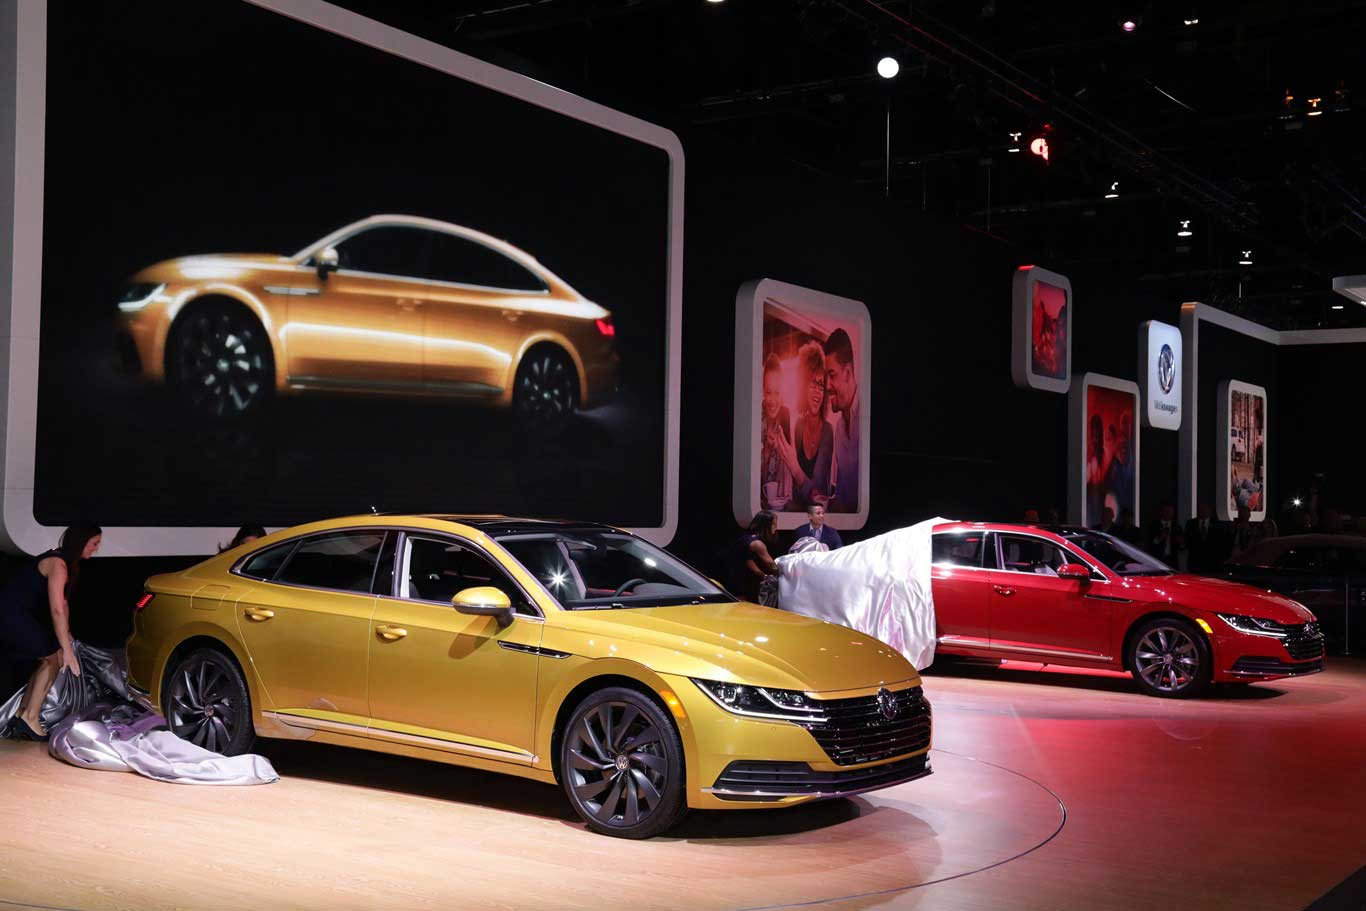 Chicago Auto Show Opens Its Doors For The 110th Edition